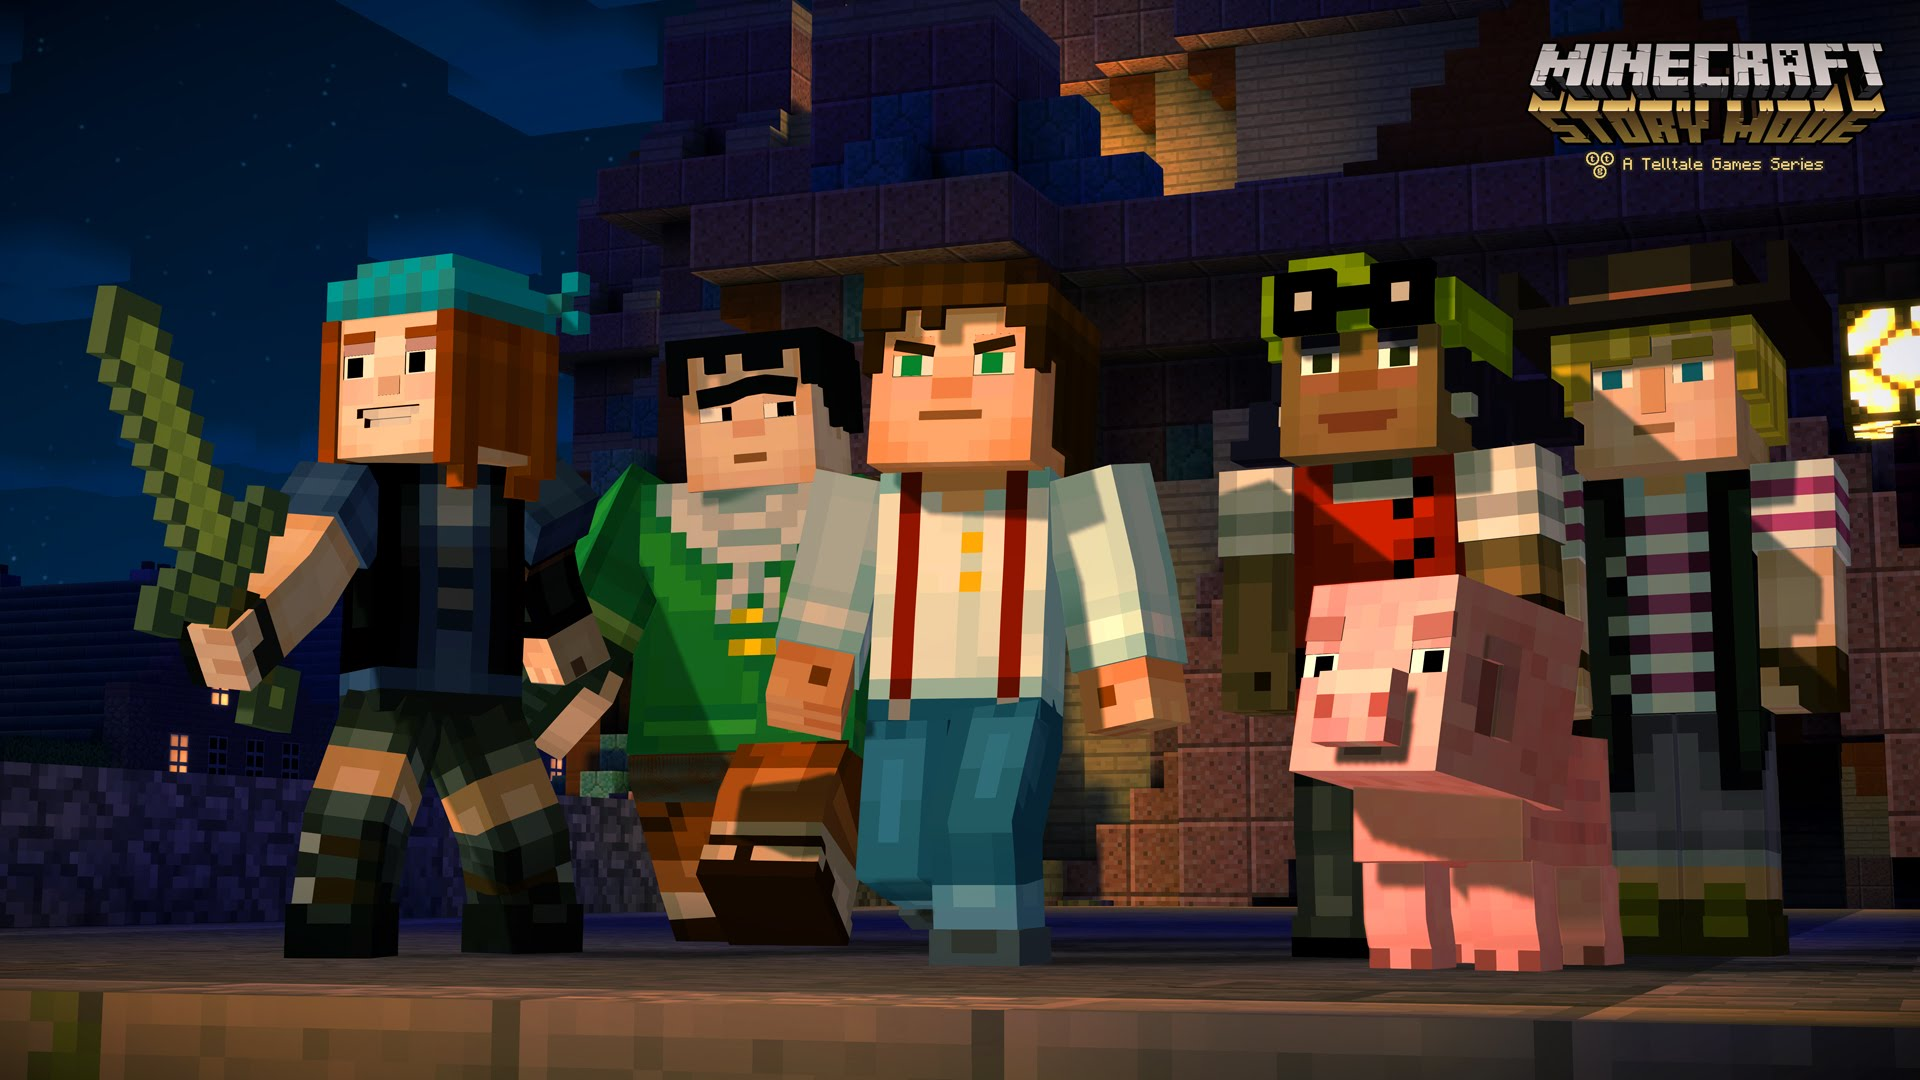 Minecraft: Story Mode - Episode 3: The Last Place You Look Desktop wallpaper